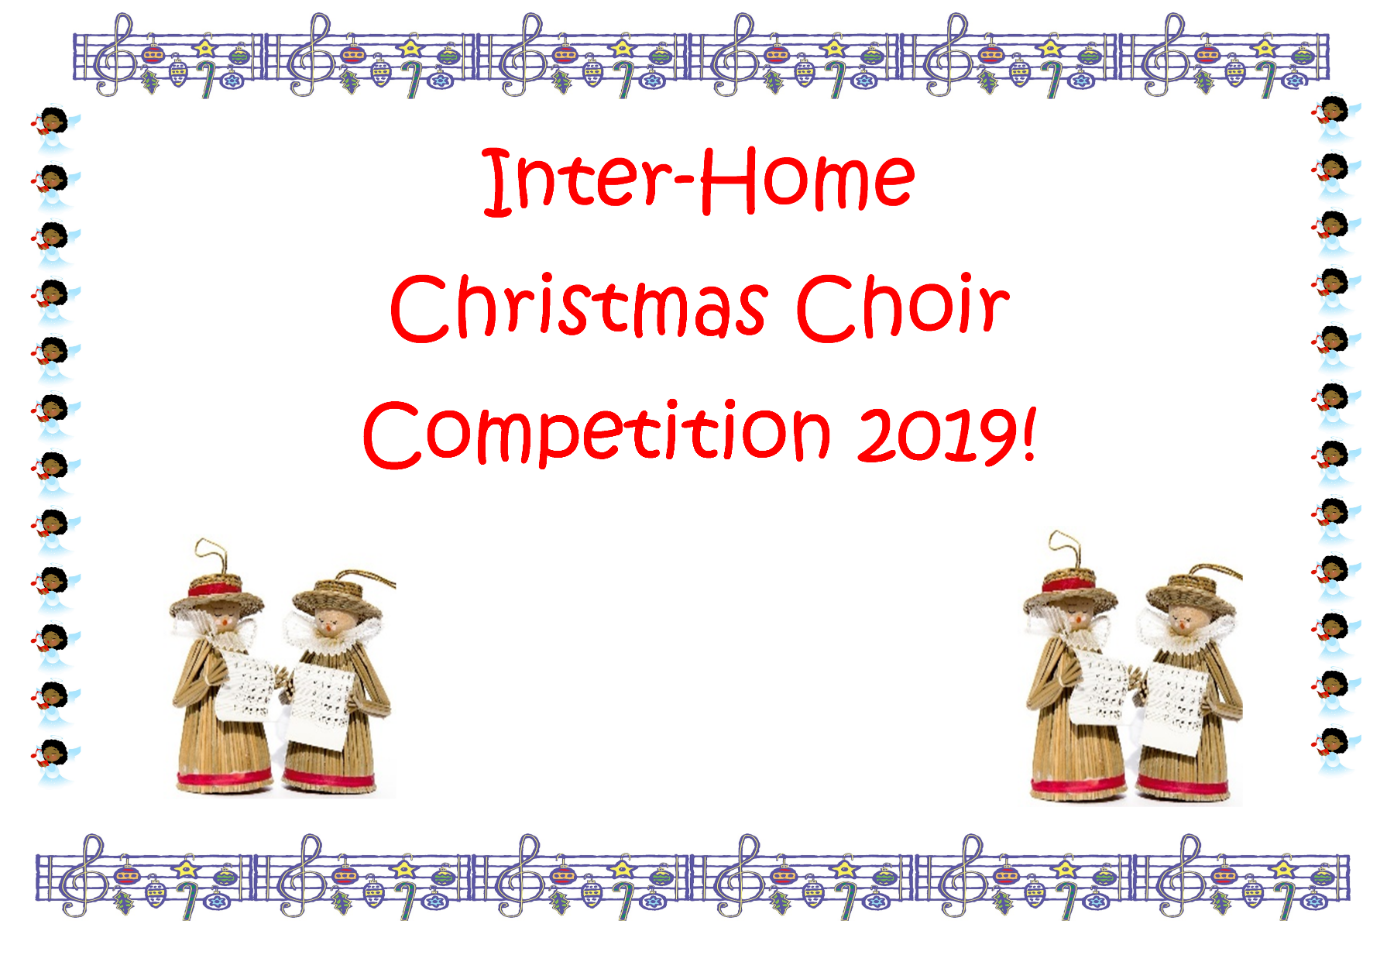 Choir Competition Image